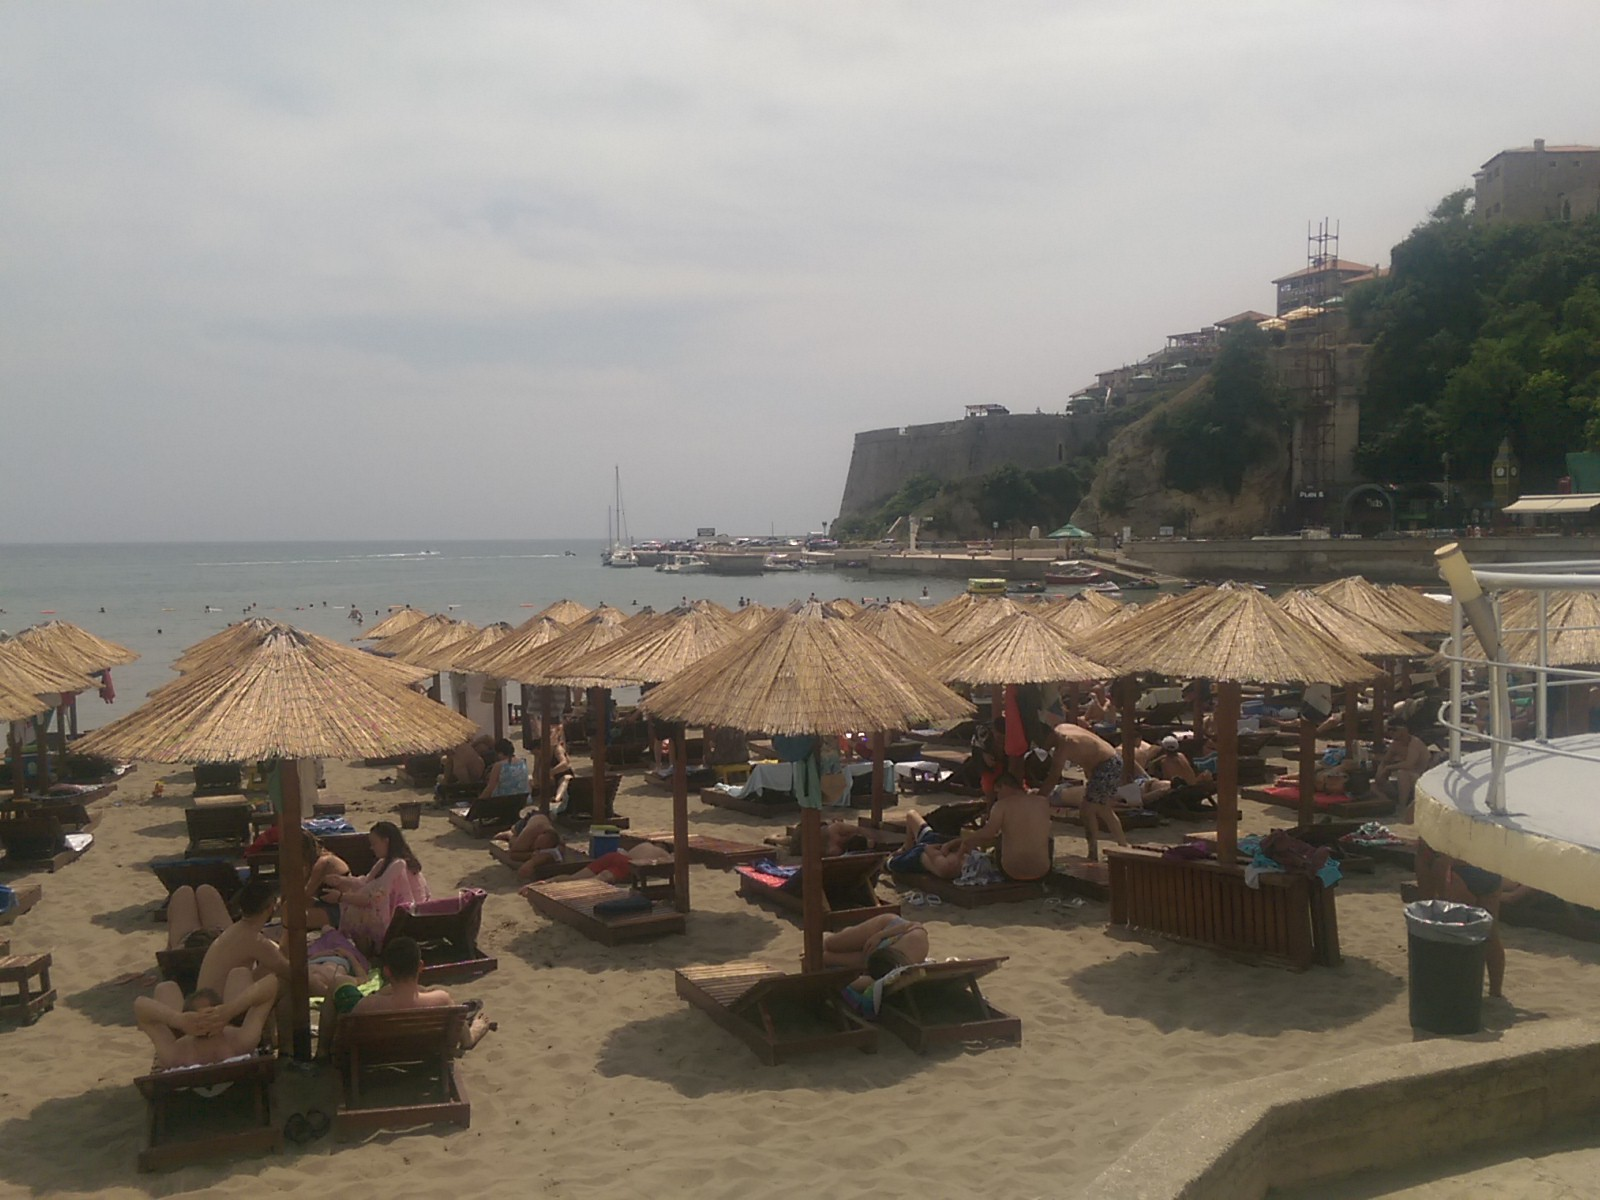 A beach overed in deckchairs and sun umbrellas, with the sea and an old town on a hill in the background